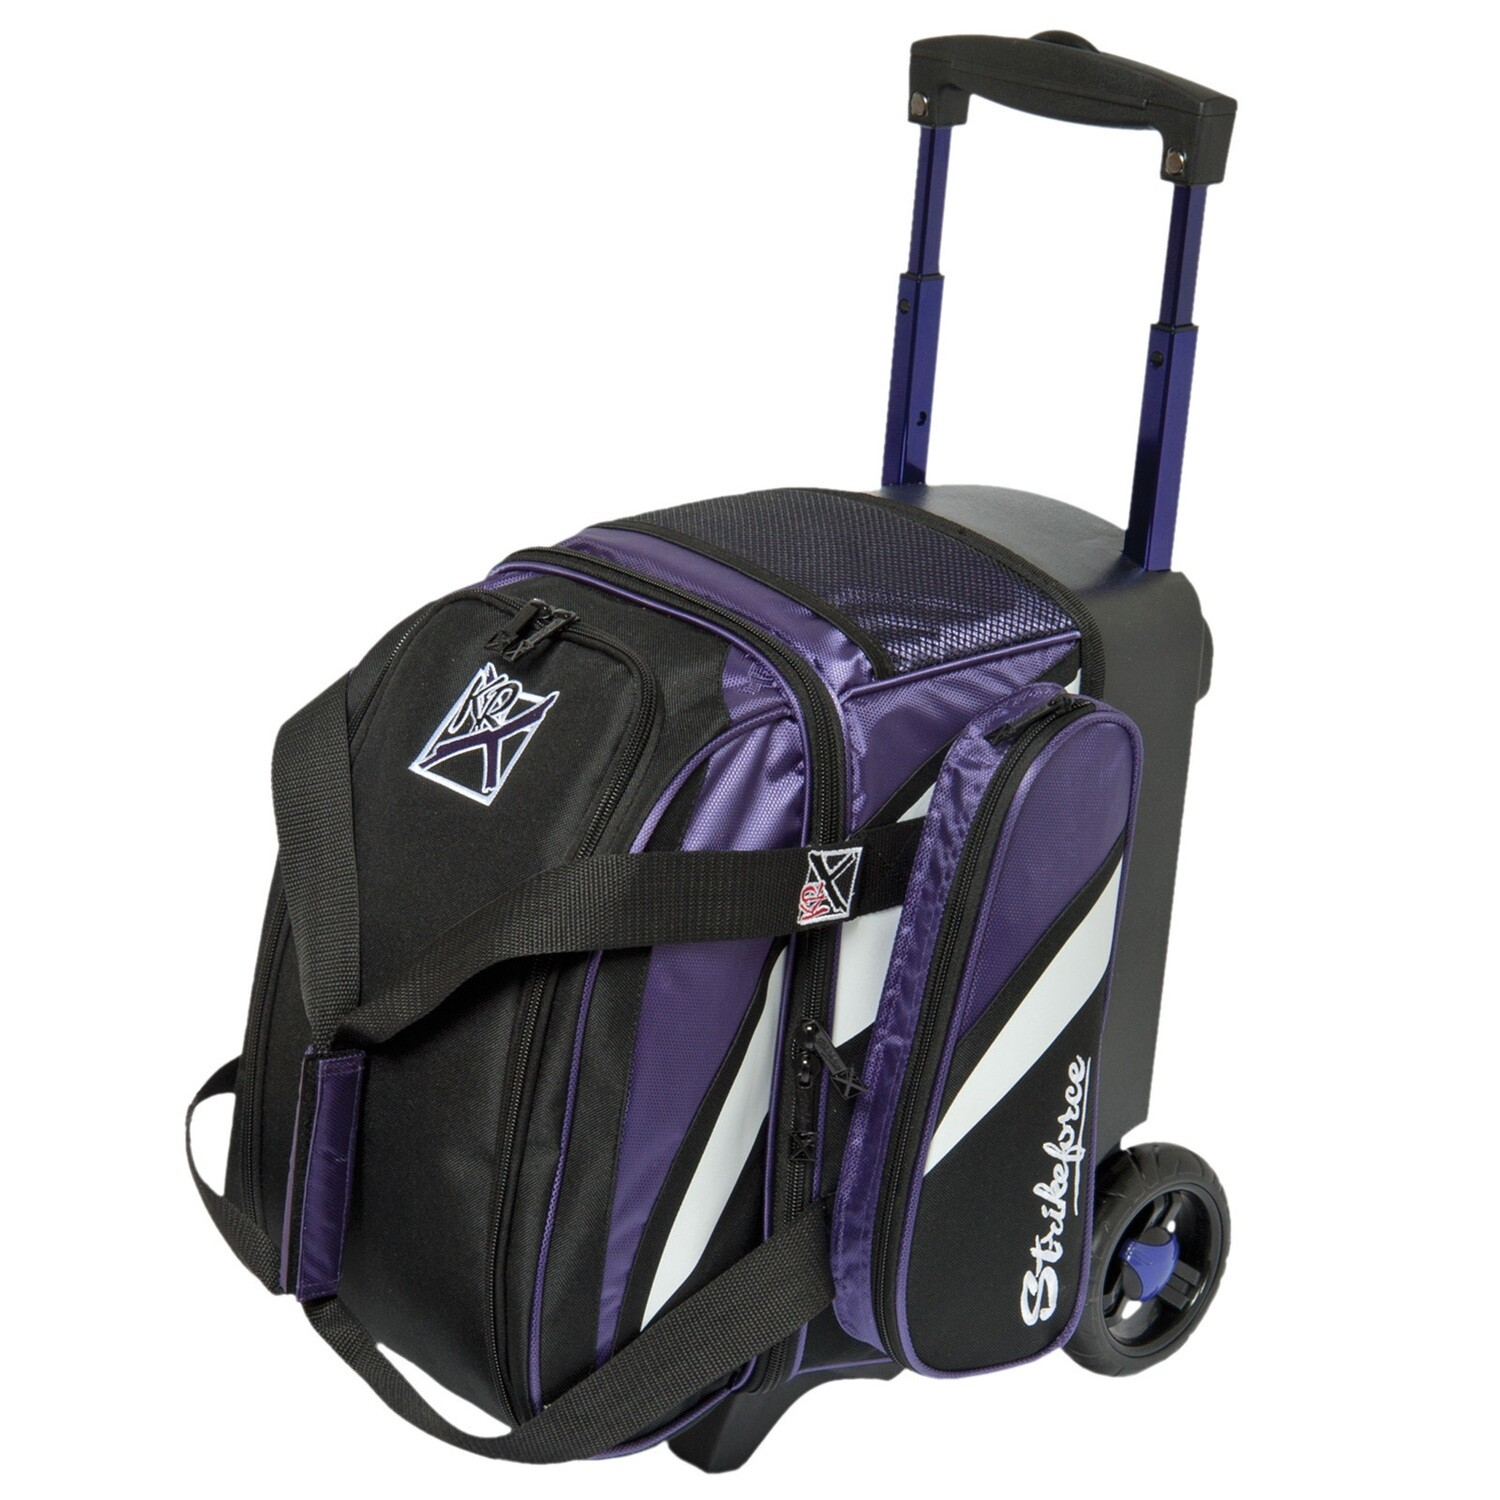 KR Strikeforce Cruiser Purple/White/Black1 Ball Roller Bowling Bag